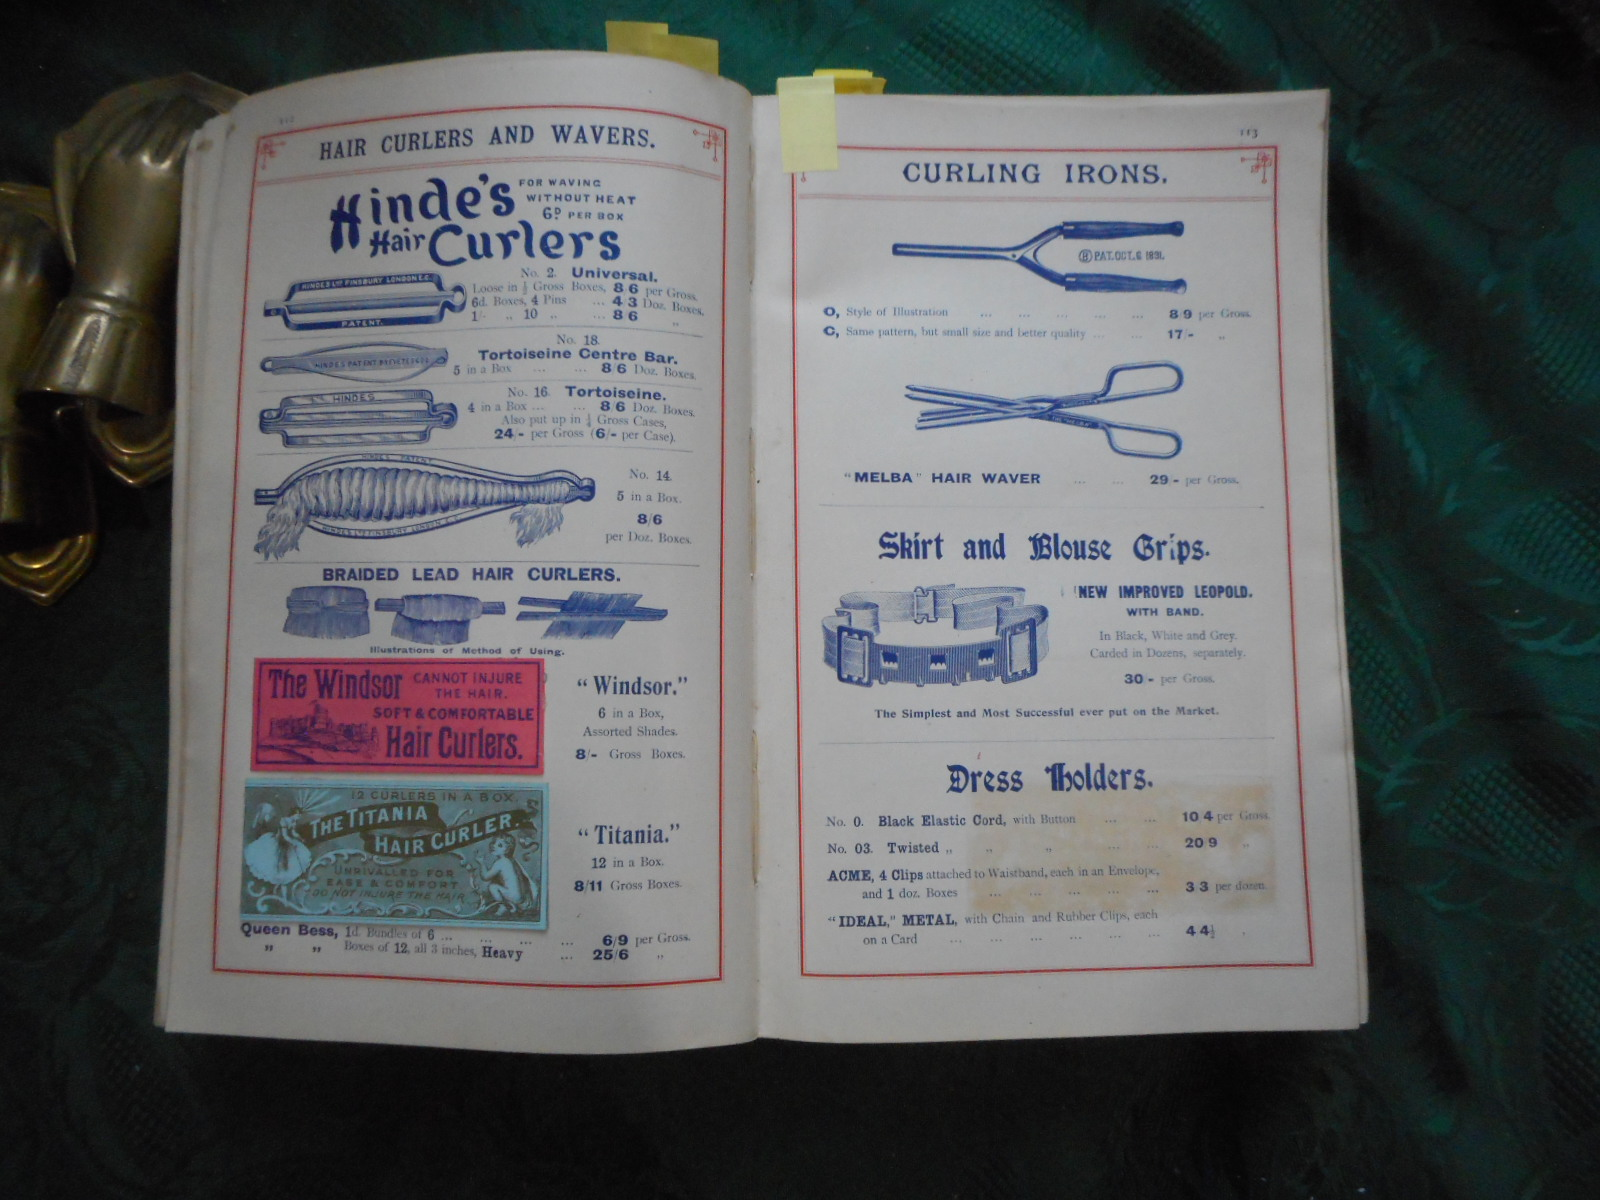 Image for Thomas Collier & Co. Ltd. Trade Wholesale HABERDASHERY CATALOGUE. Arrangement of Departments at the Warehouse = Wools; Smallwares; Tapes; Trimmings; Laces; Dyes; Flannels; Ribbons; Gloves and Umbrellas; Blouses and Skirts; Corsets; and Hosiery.